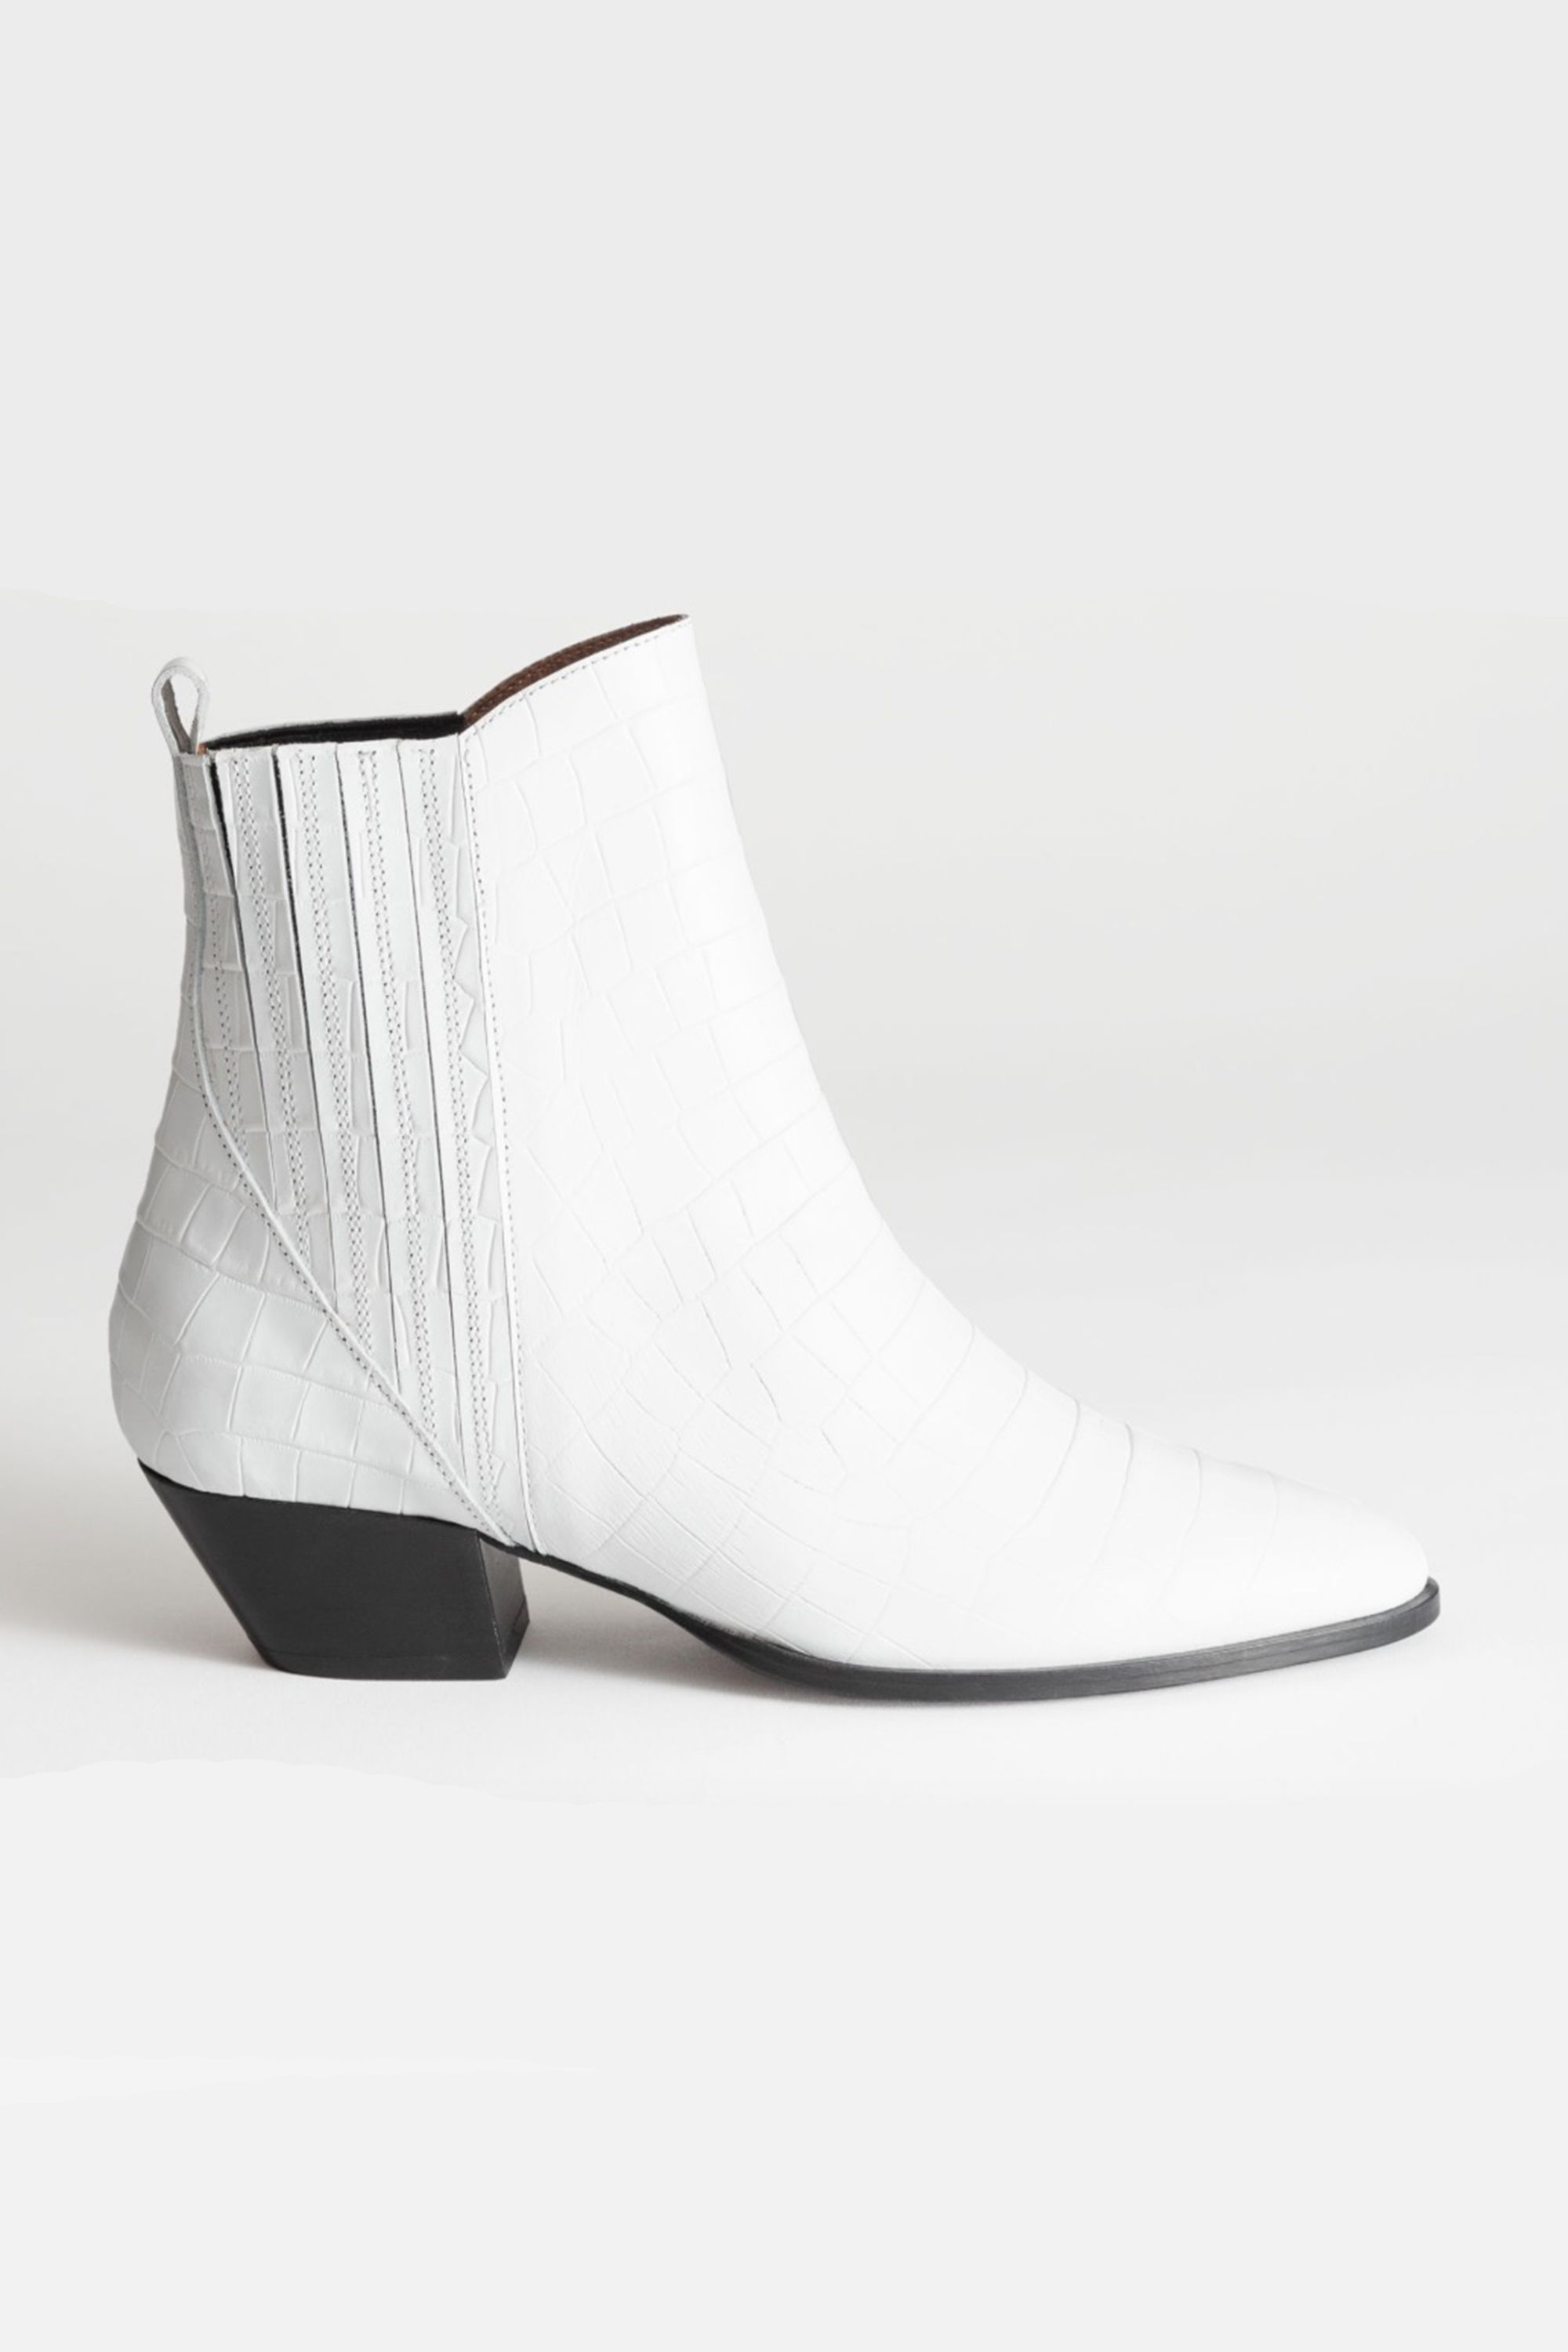 White Spring Buy 10 For To Boots Best Vfb76ygy Wear How 2019 xCtQBsohrd